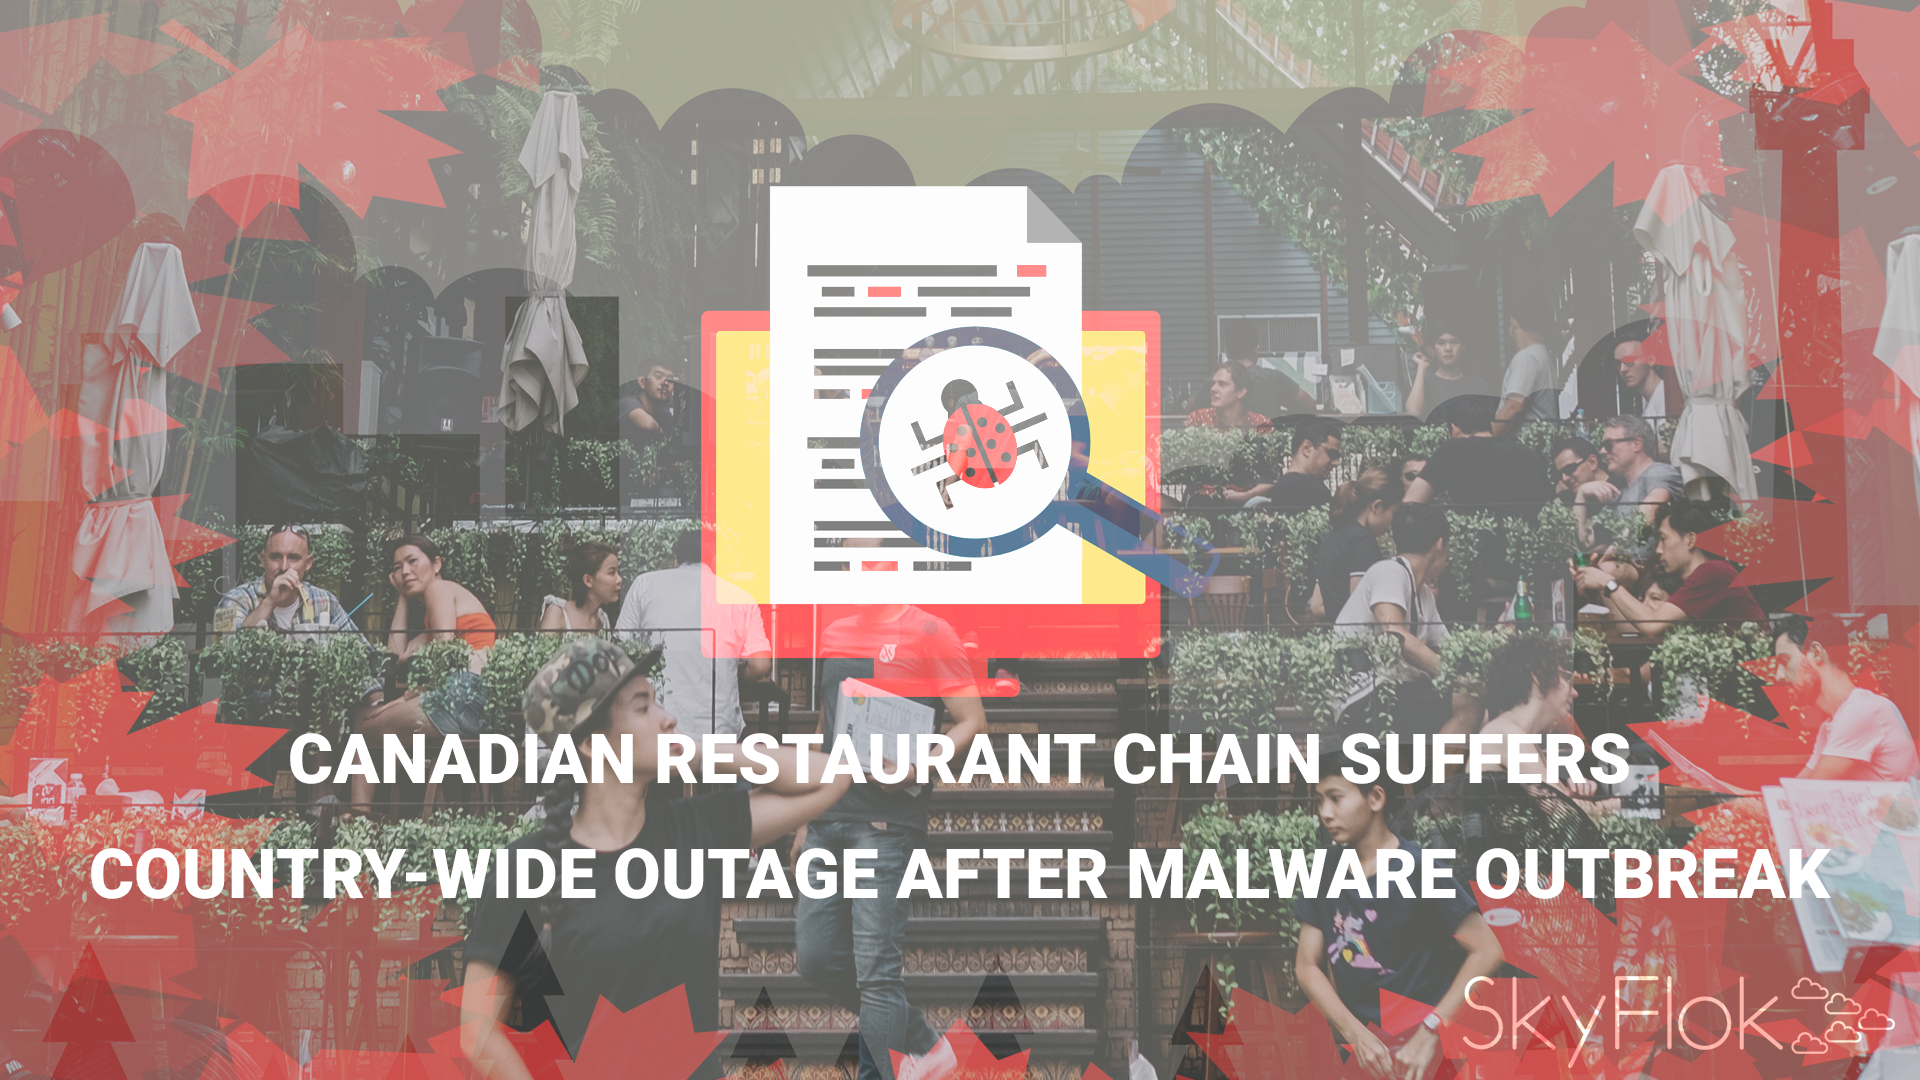 Canadian restaurant chain suffers country-wide outage after malware outbreak